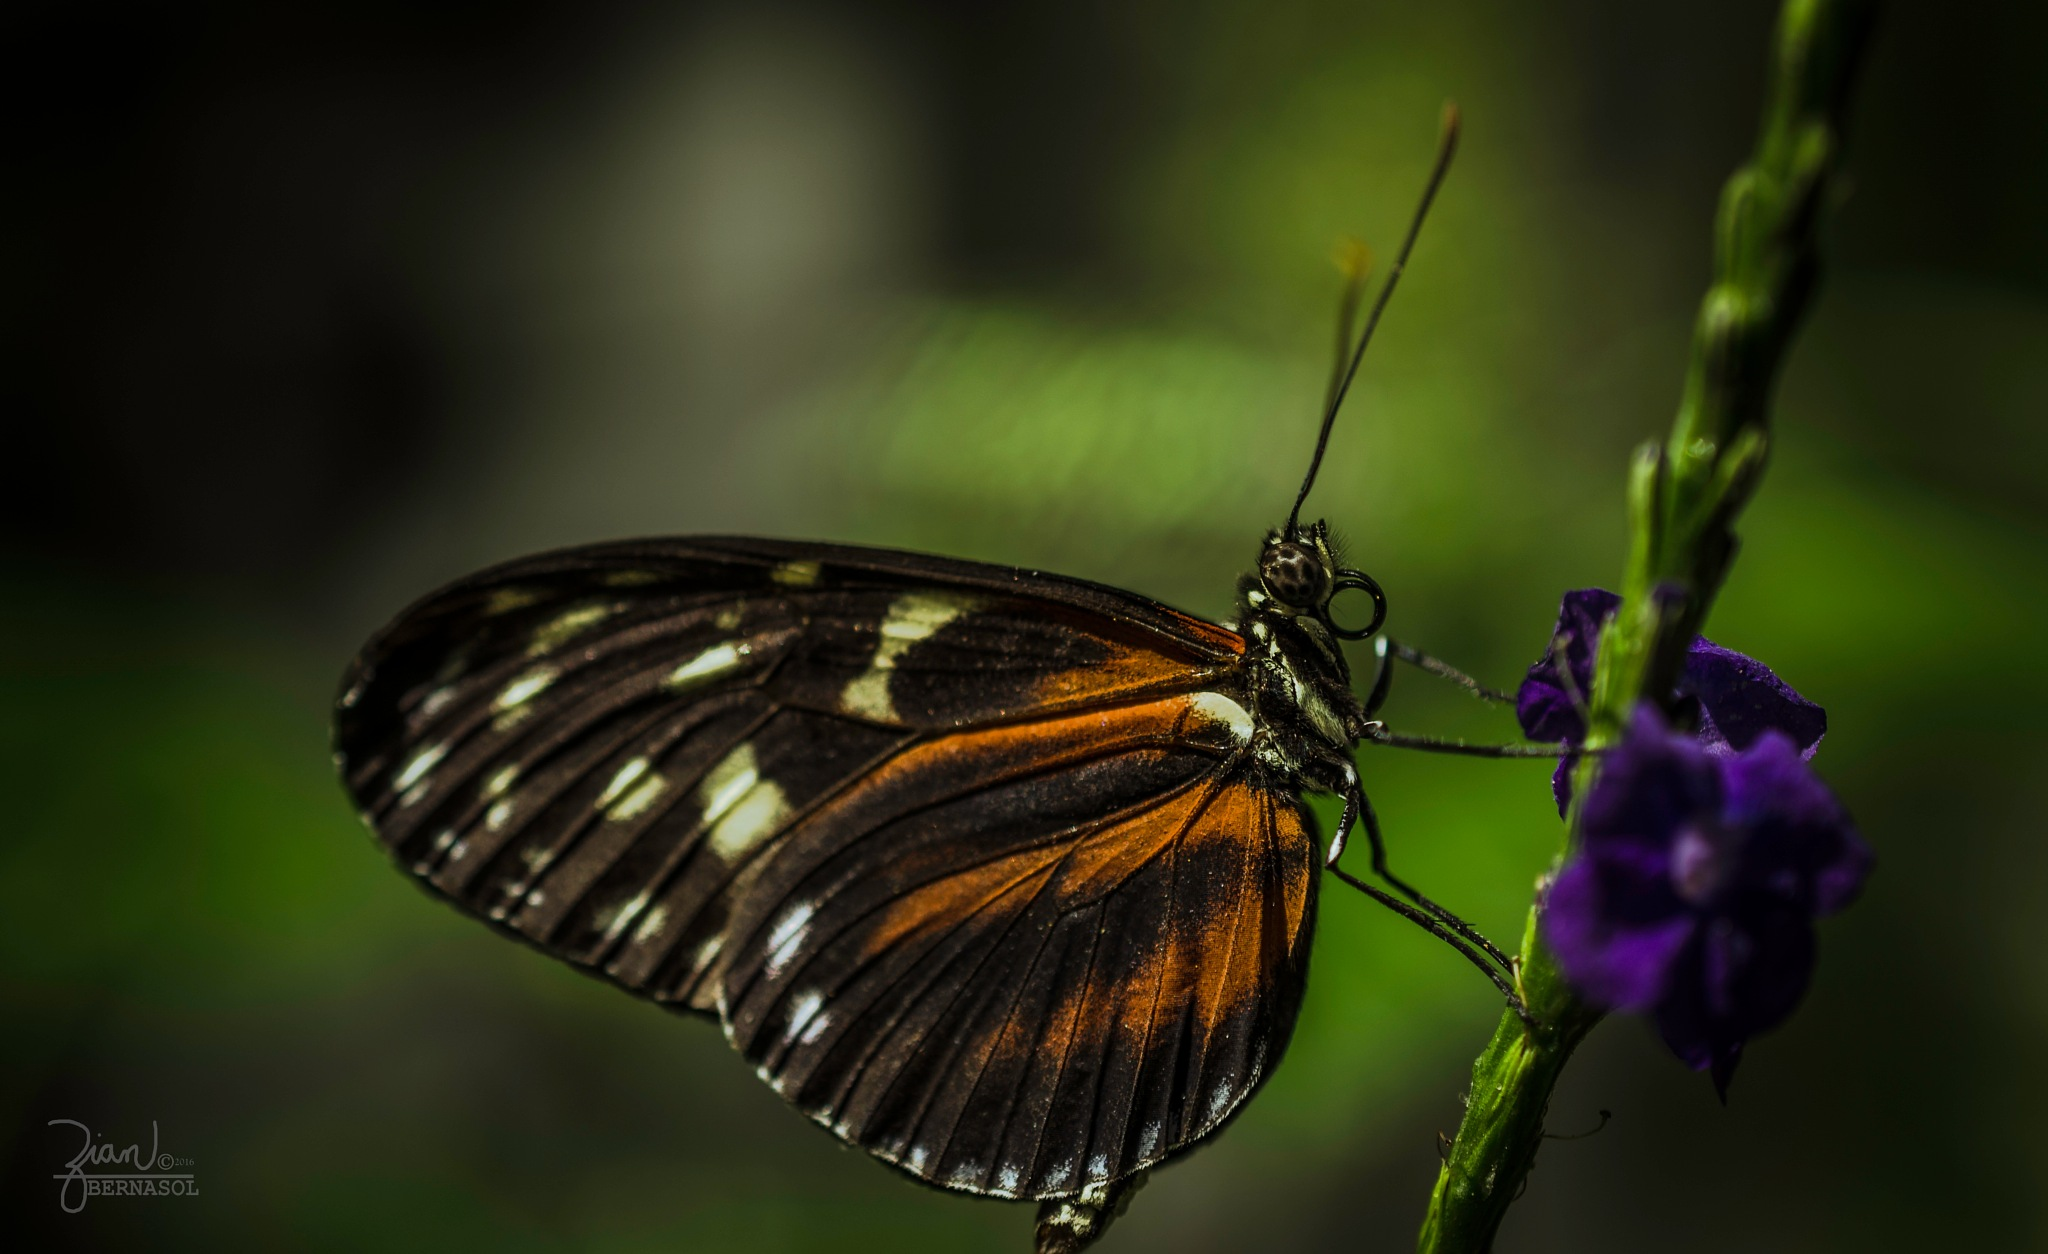 Butterfly wings by Zian Bernasol